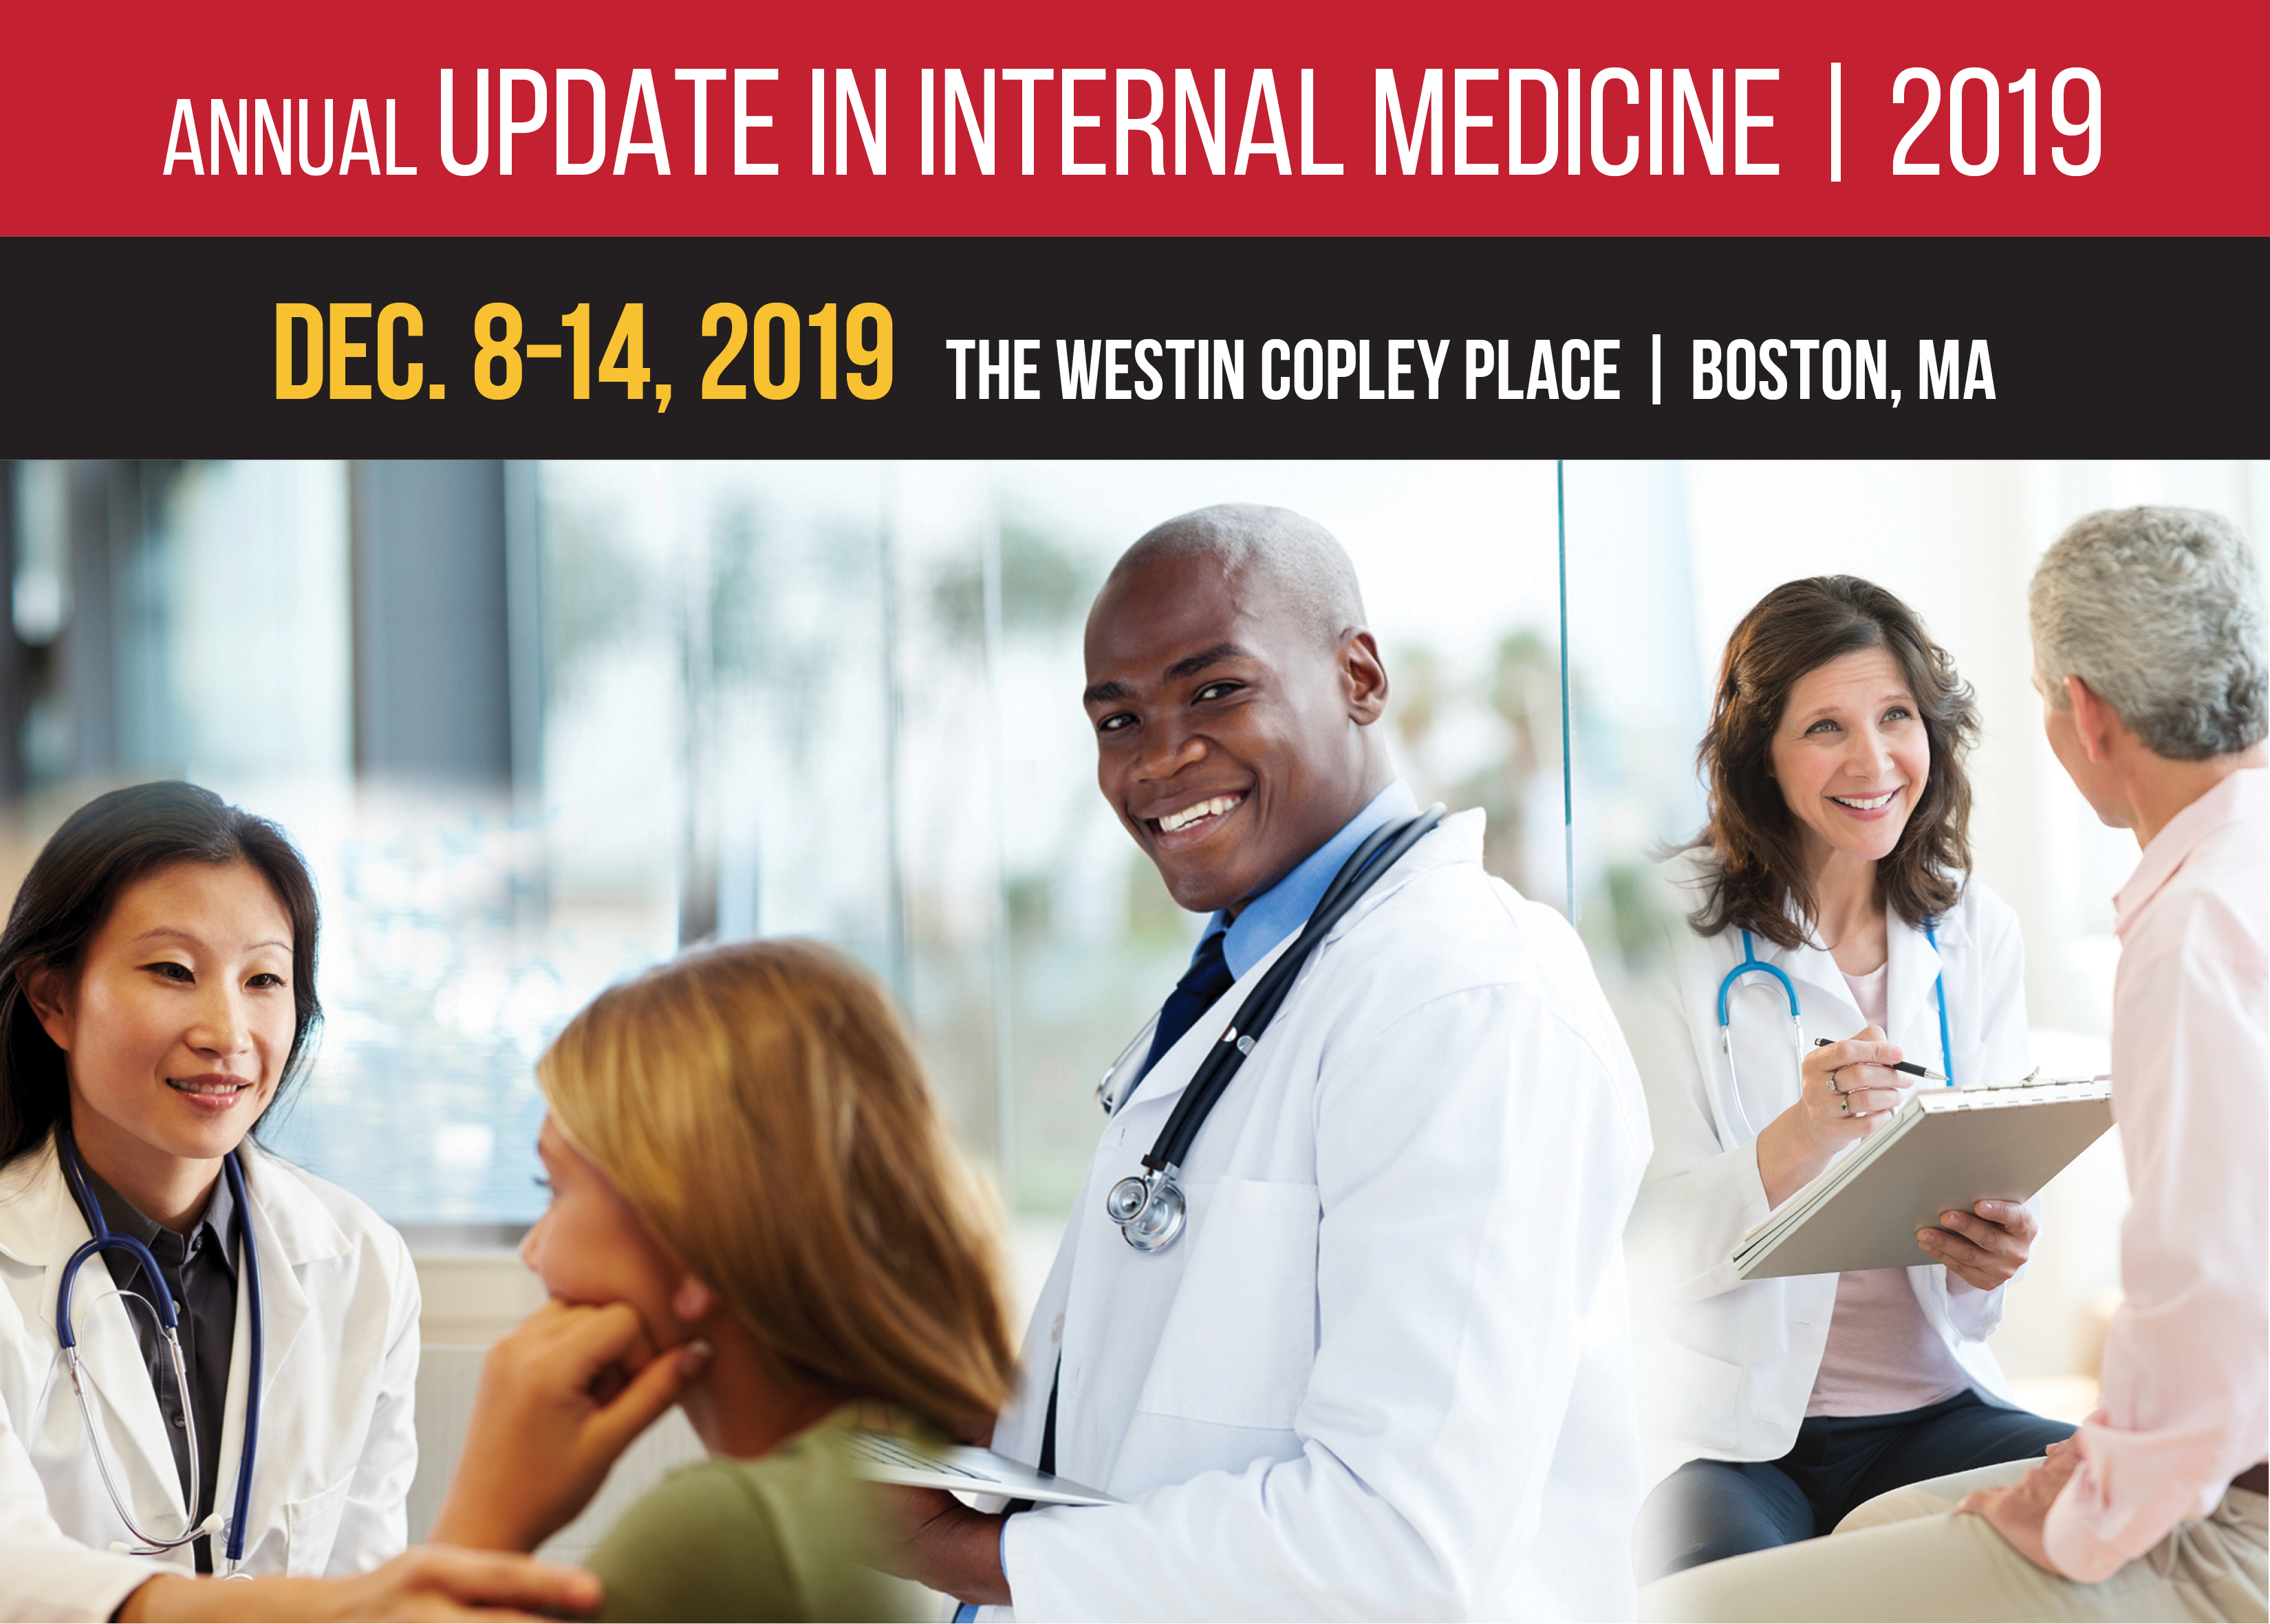 Annual Update in Internal Medicine - Conferences by QxMD